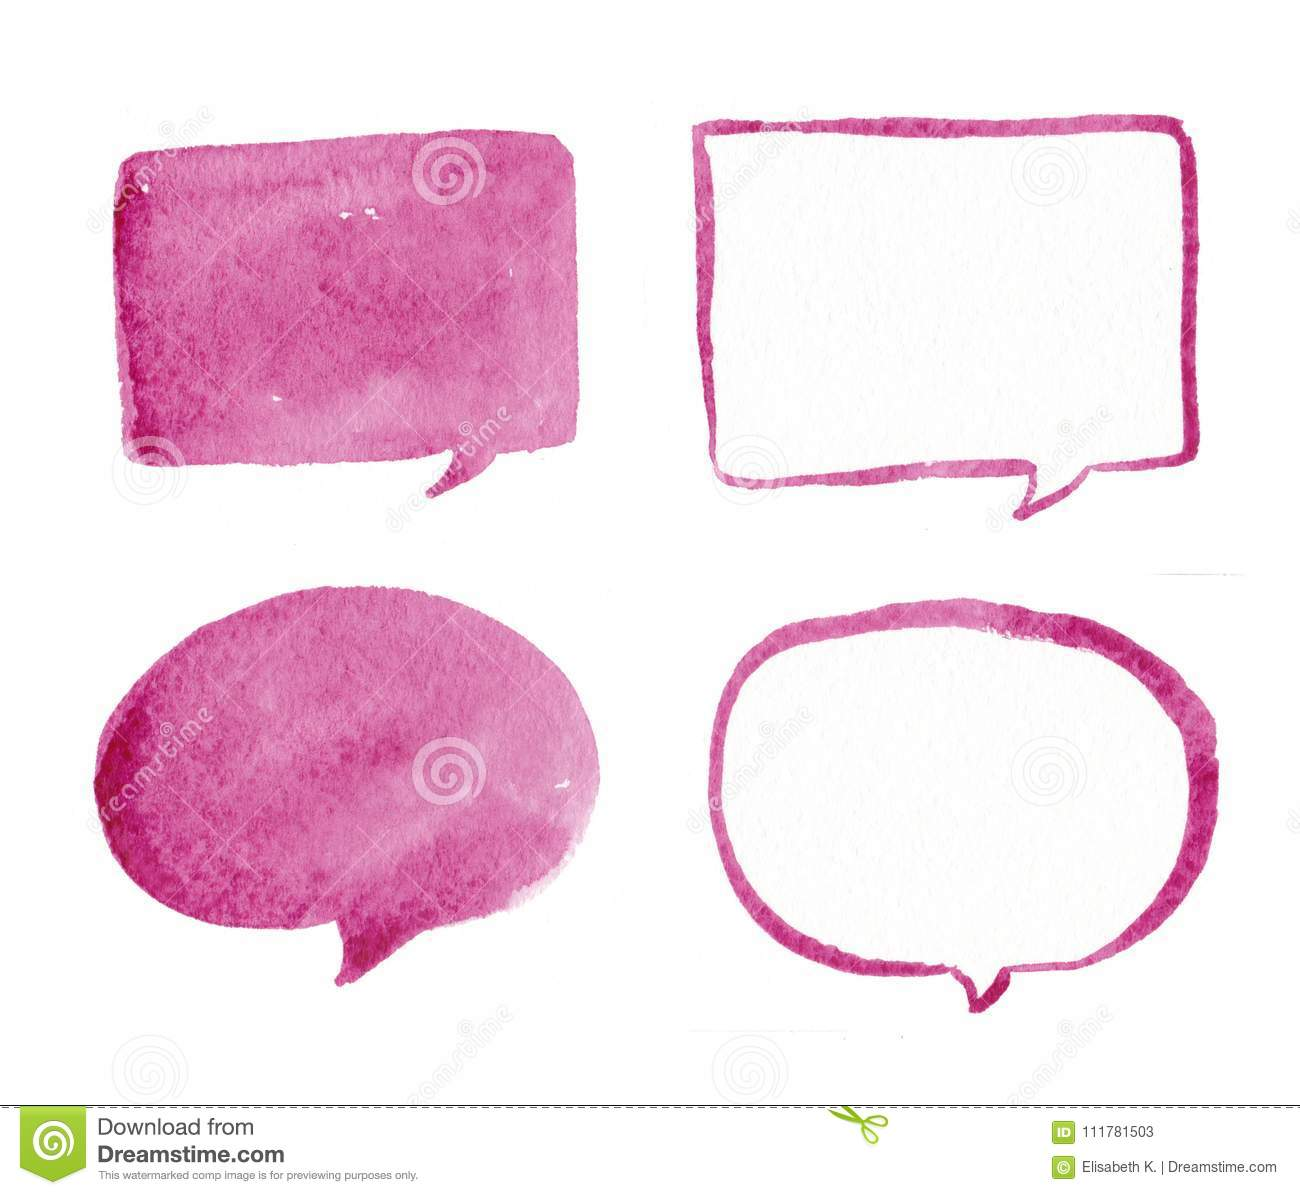 Hand drawn pink bubble speech watercolor set, bubble watercolor. Pink bubble